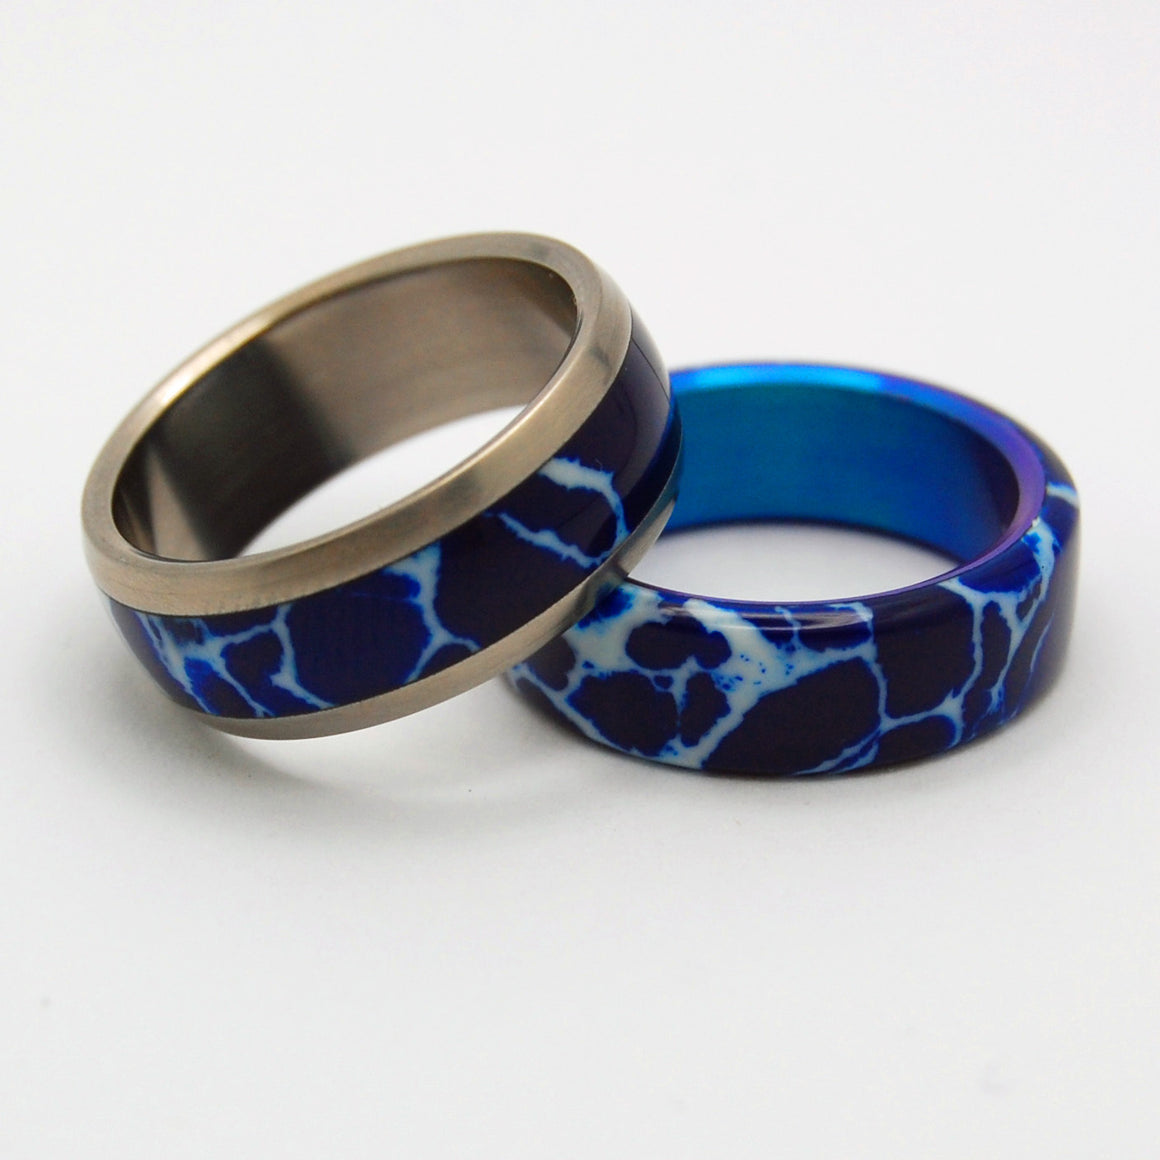 Goblin Ore and Every Drop of Cobalt | Handcrafted Stone Wedding Ring Set